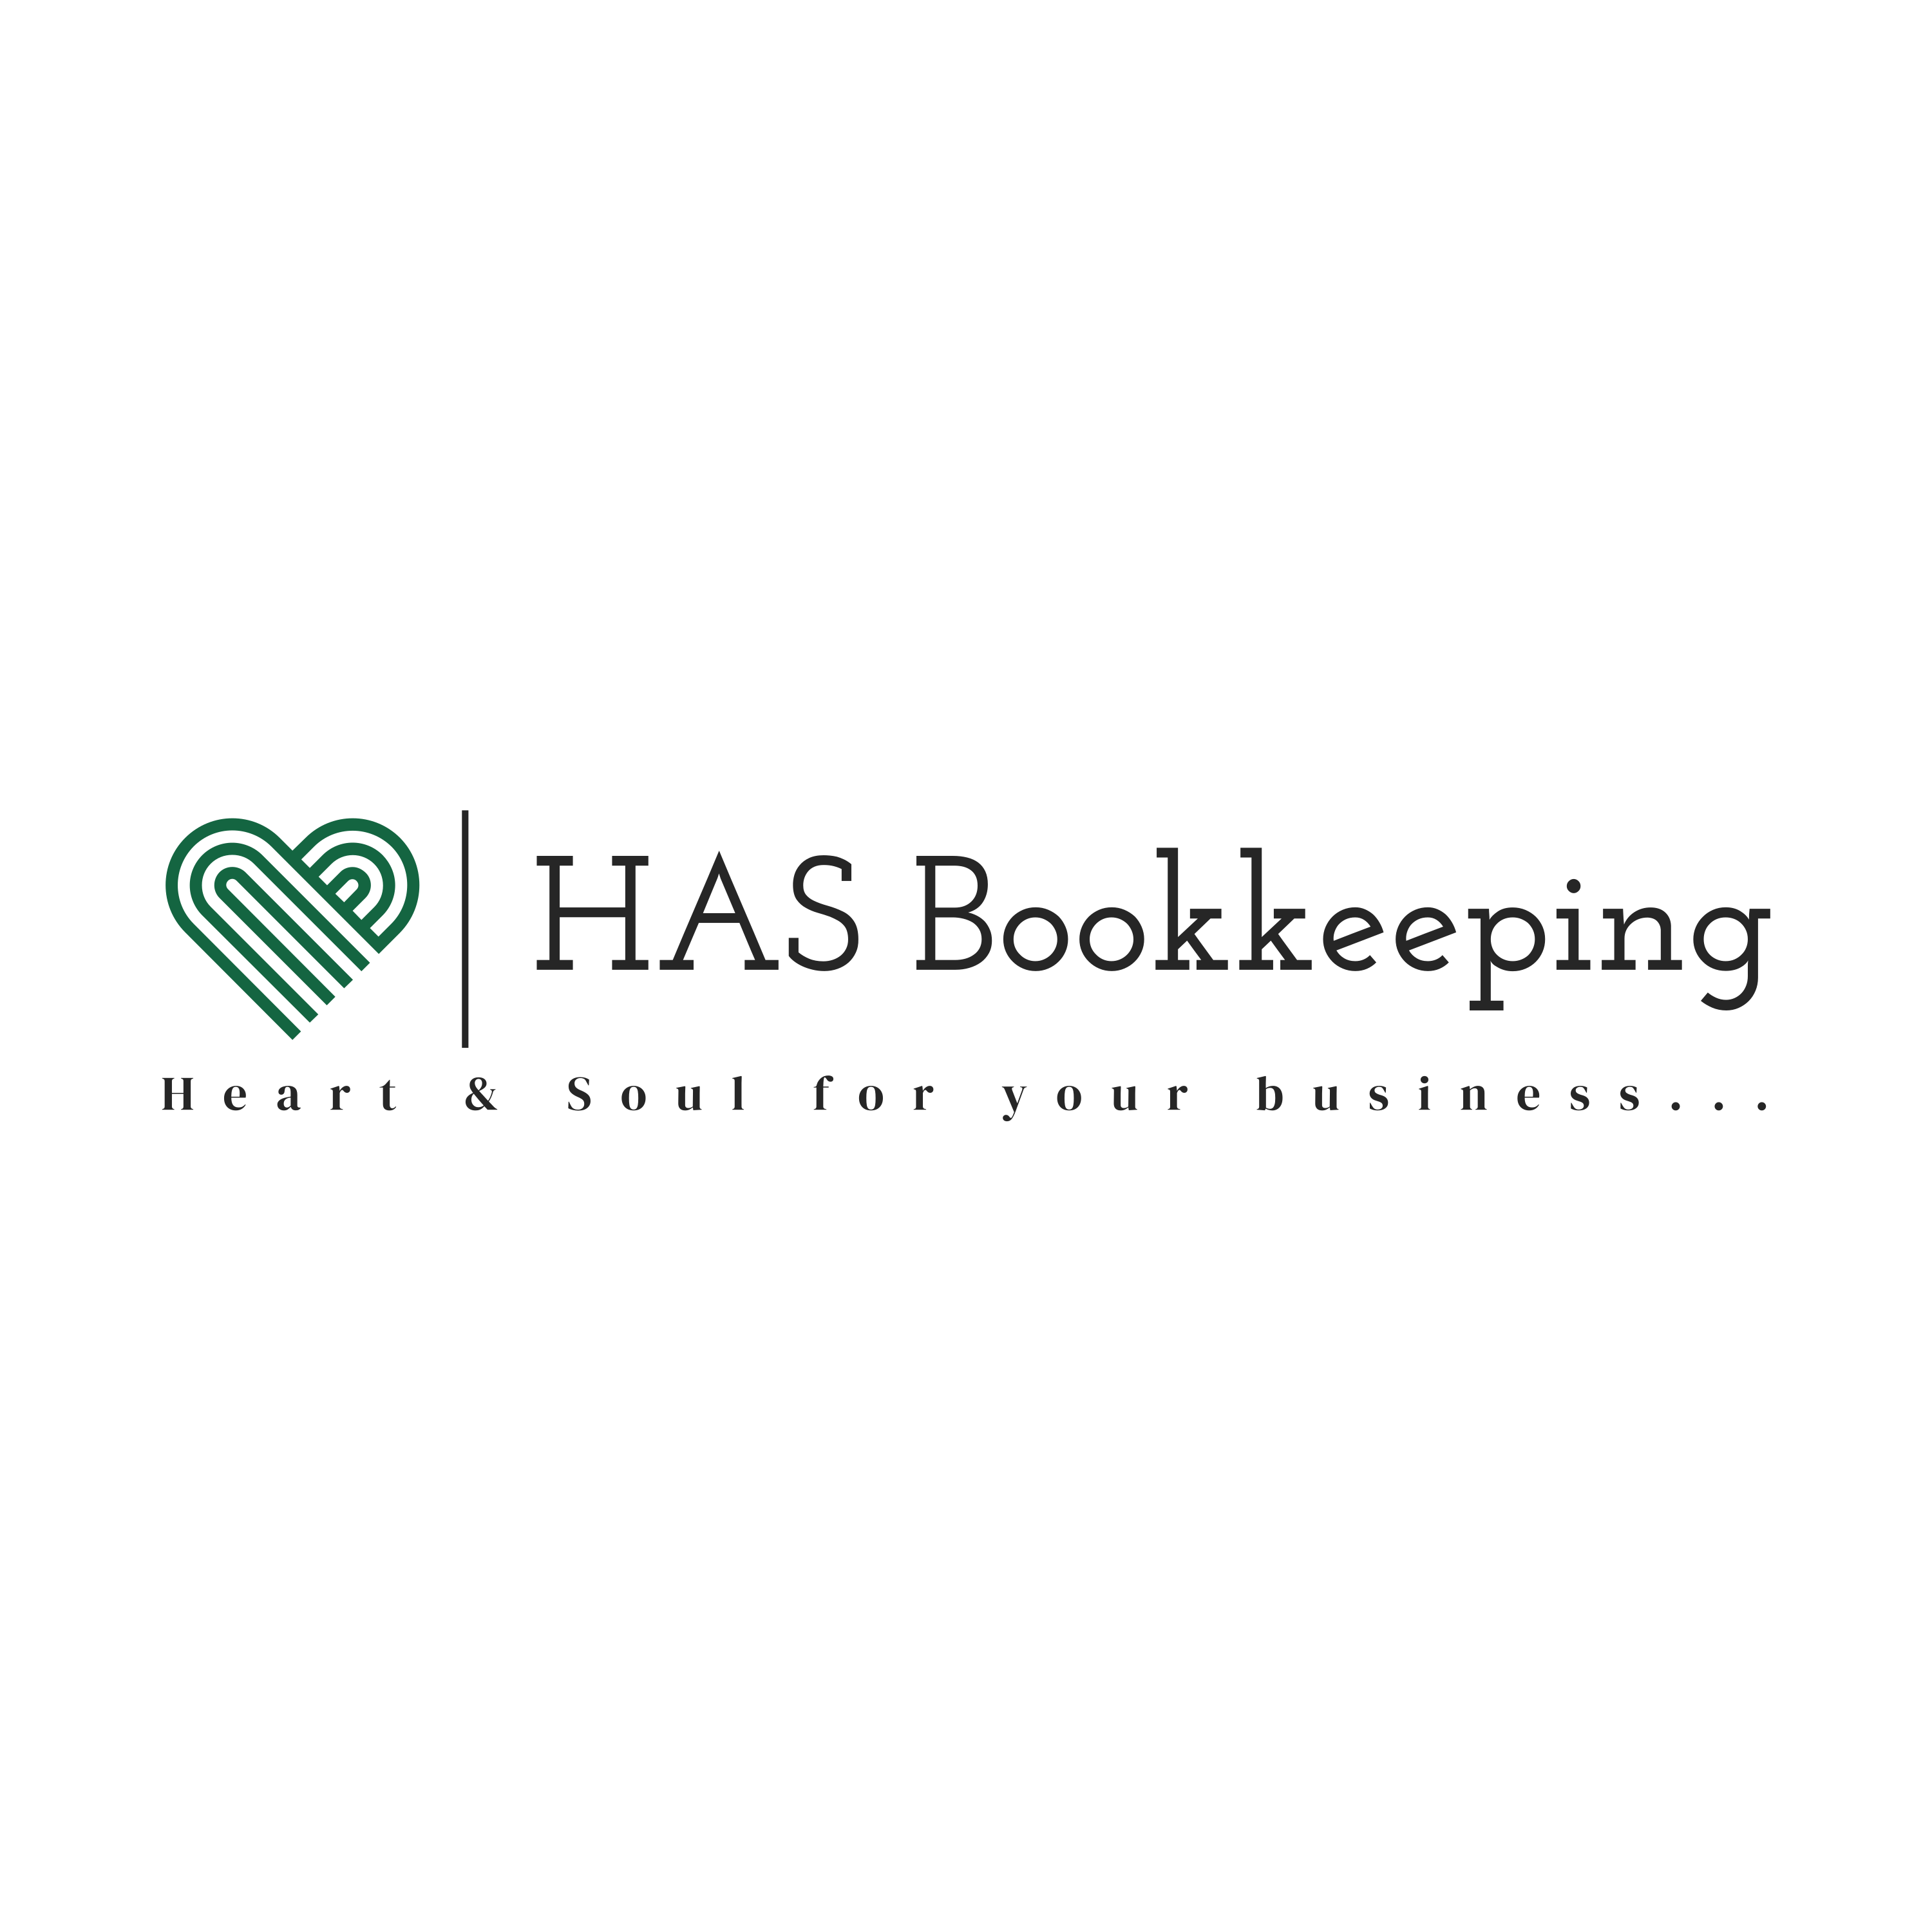 HAS Bookkeeping